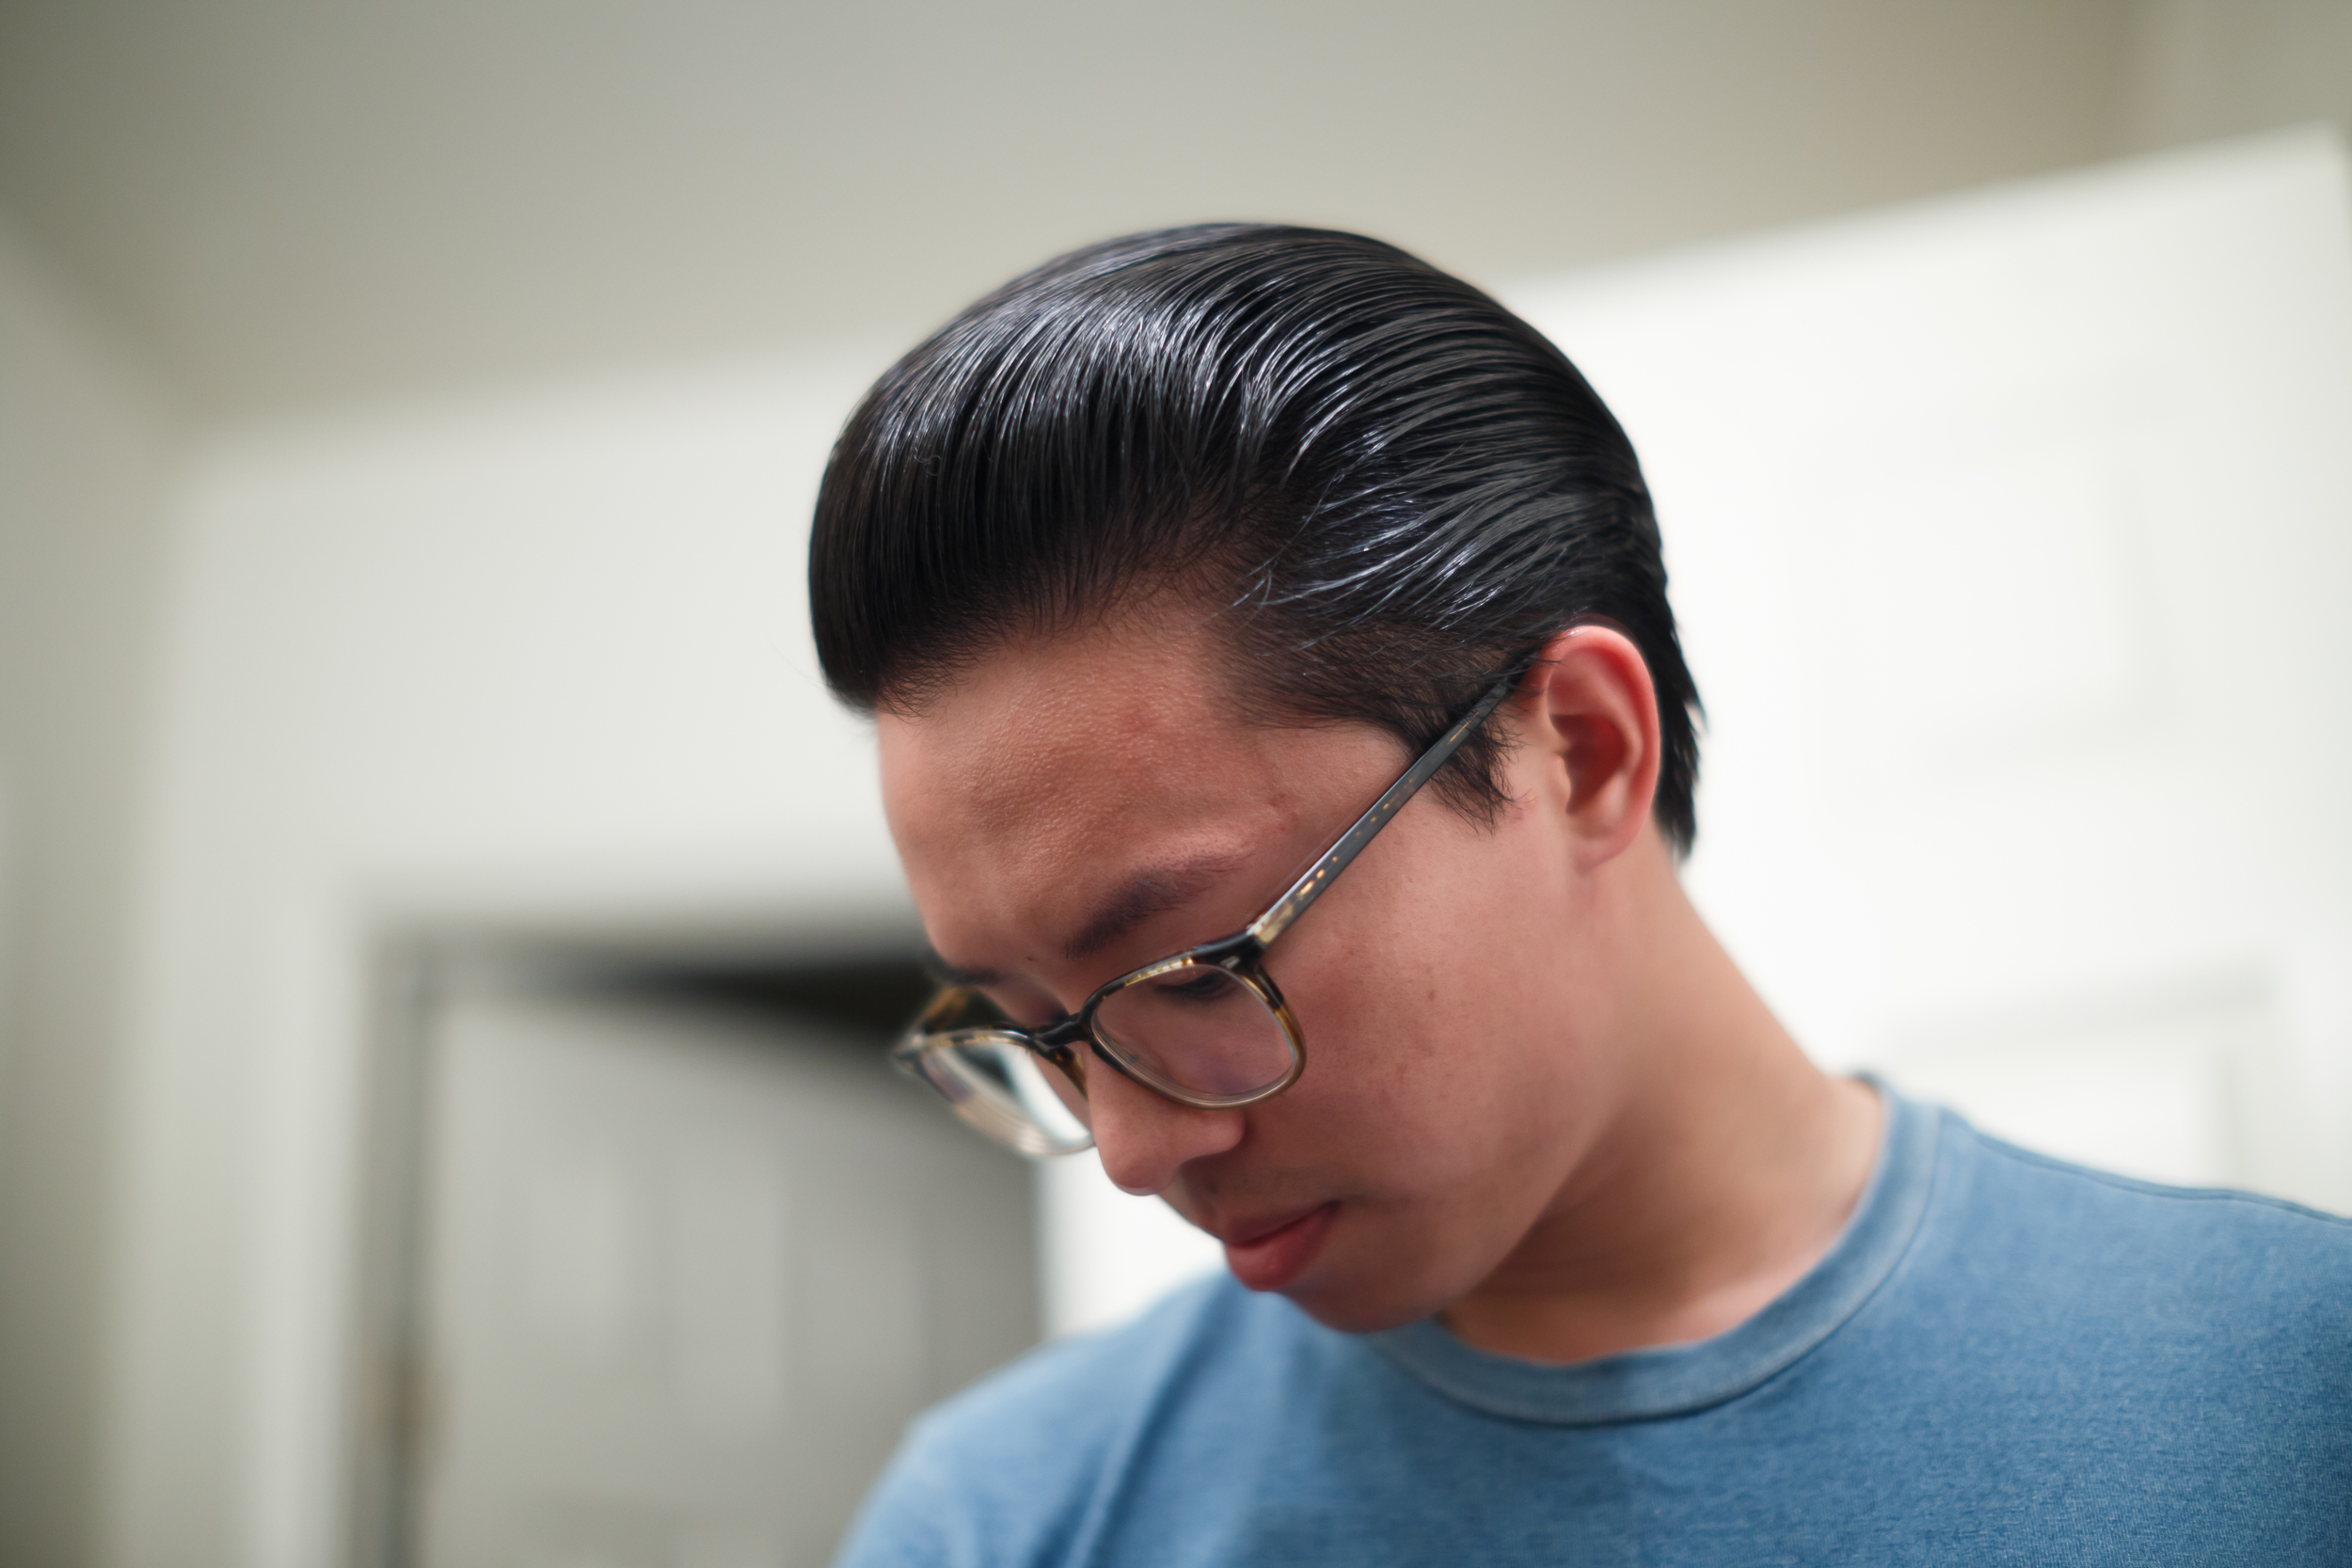 Charming Pomade Cool Grease CoolGrease Hedgelion Japan Japanese Hair Hairstyle Pomp Pompadour sf3q3